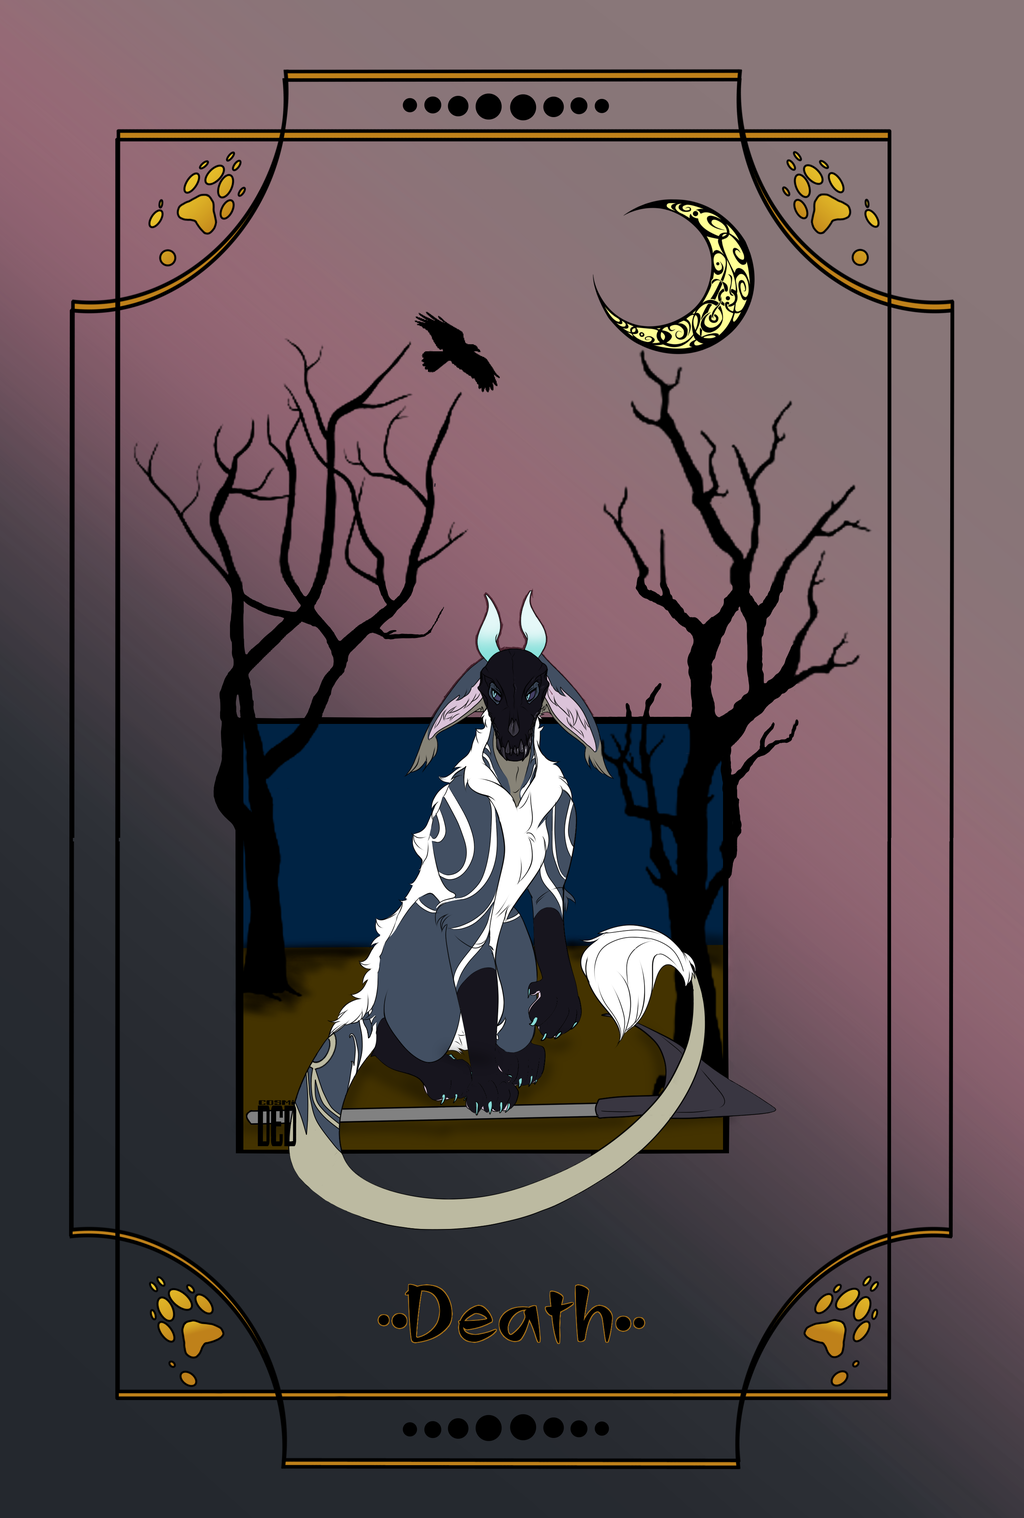 Most recent image: Death Tarot card (personal)